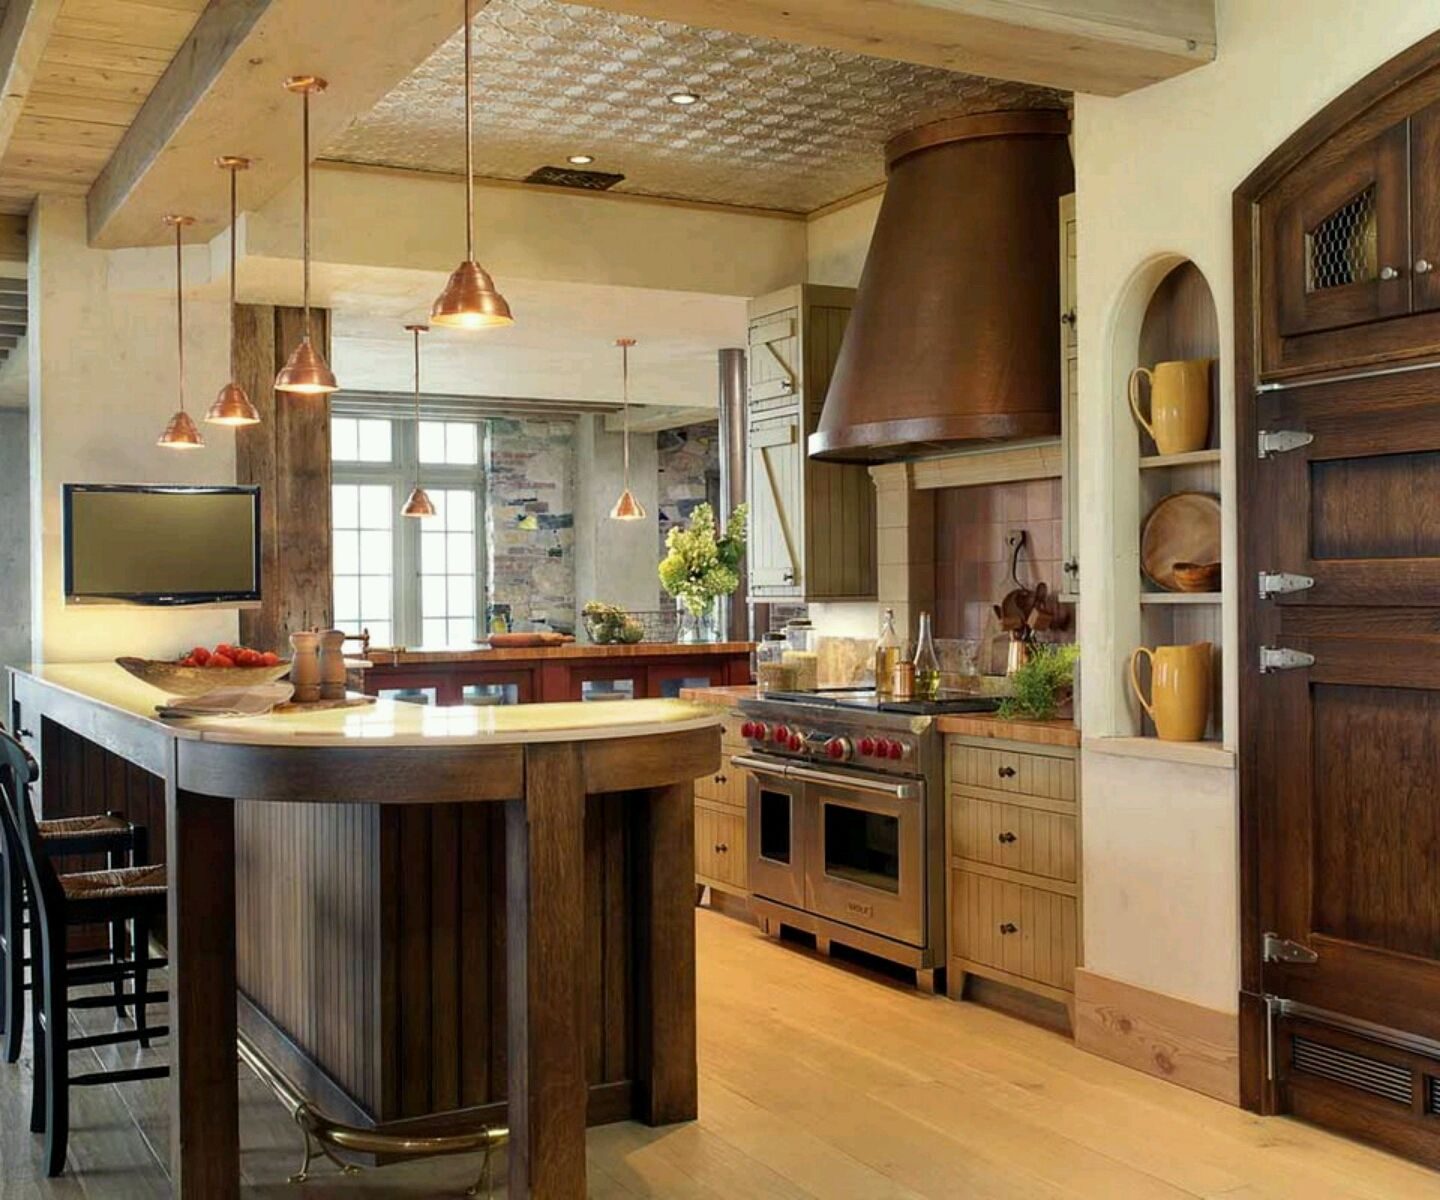 home designs latest modern home kitchen cabinet designs ideas timber kitchen renovation massive